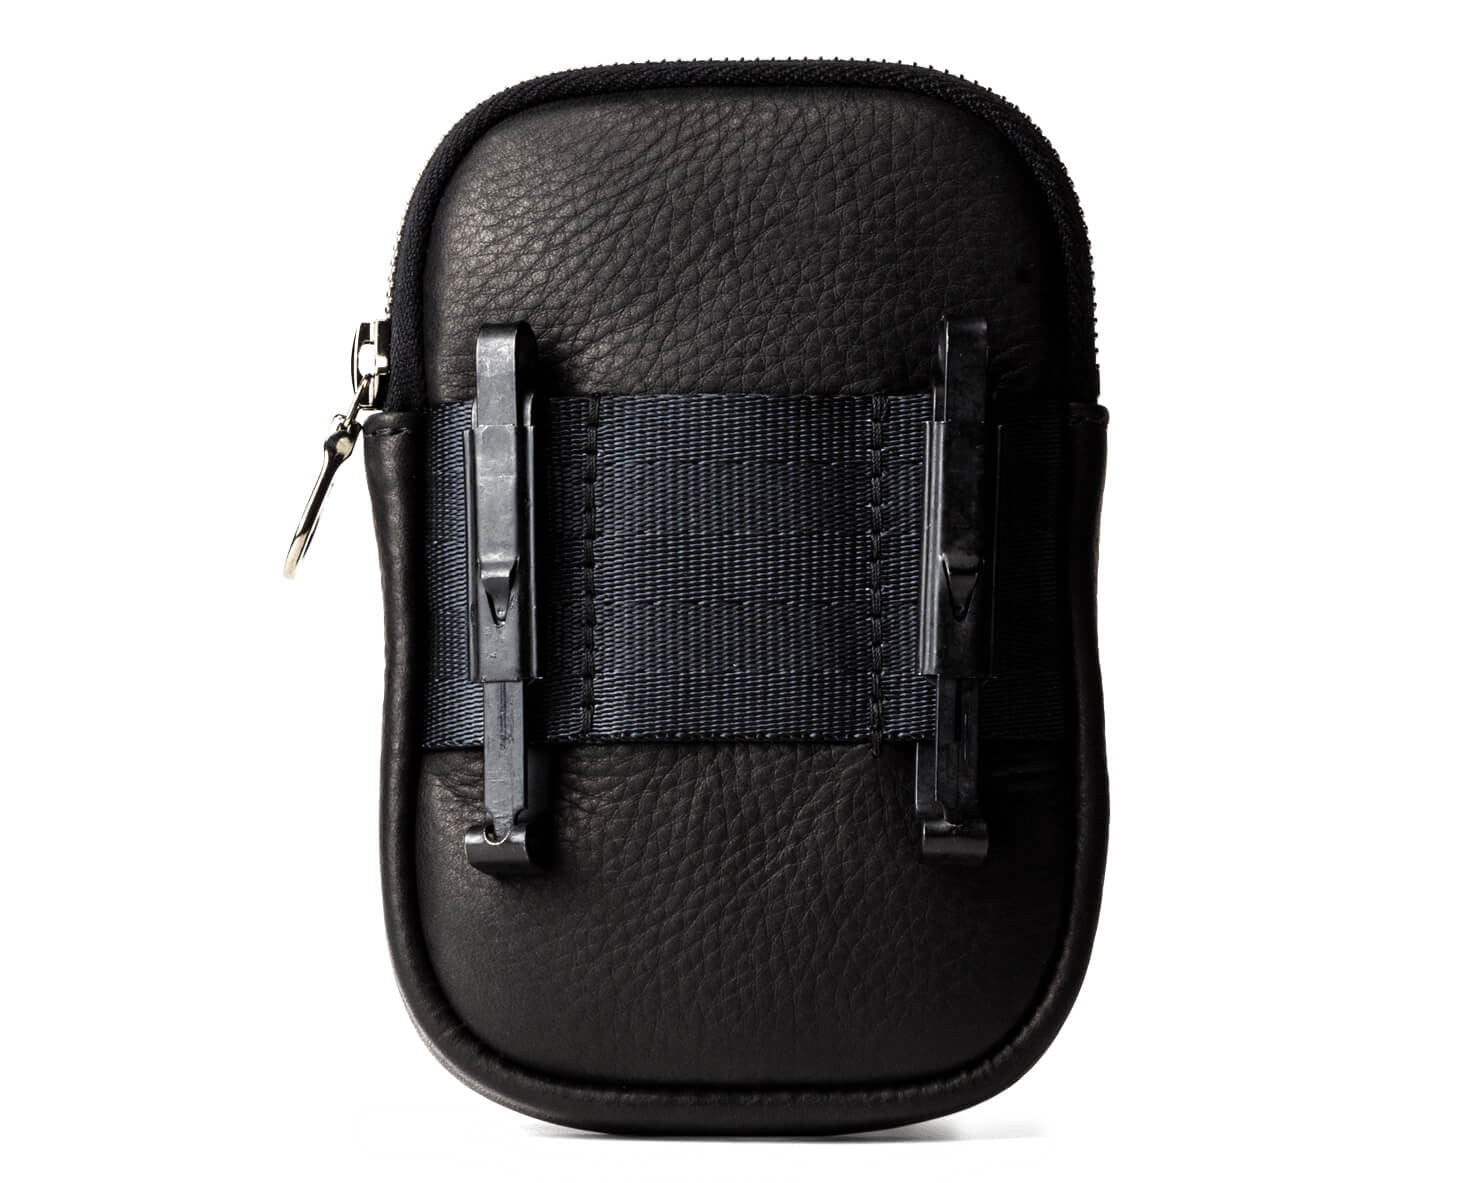 ACCESSORY CASE 2.0 | KILLSPENCER® - Black Leather